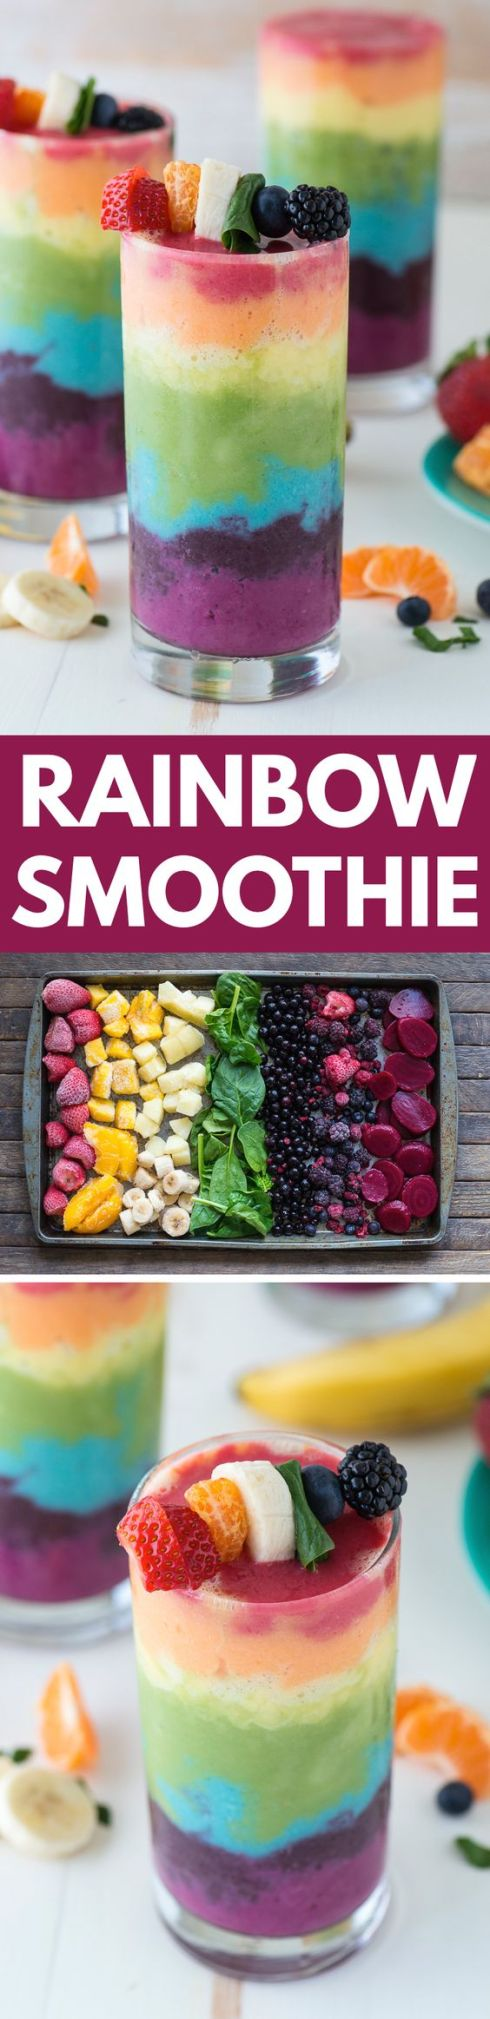 rainbow-smoothie